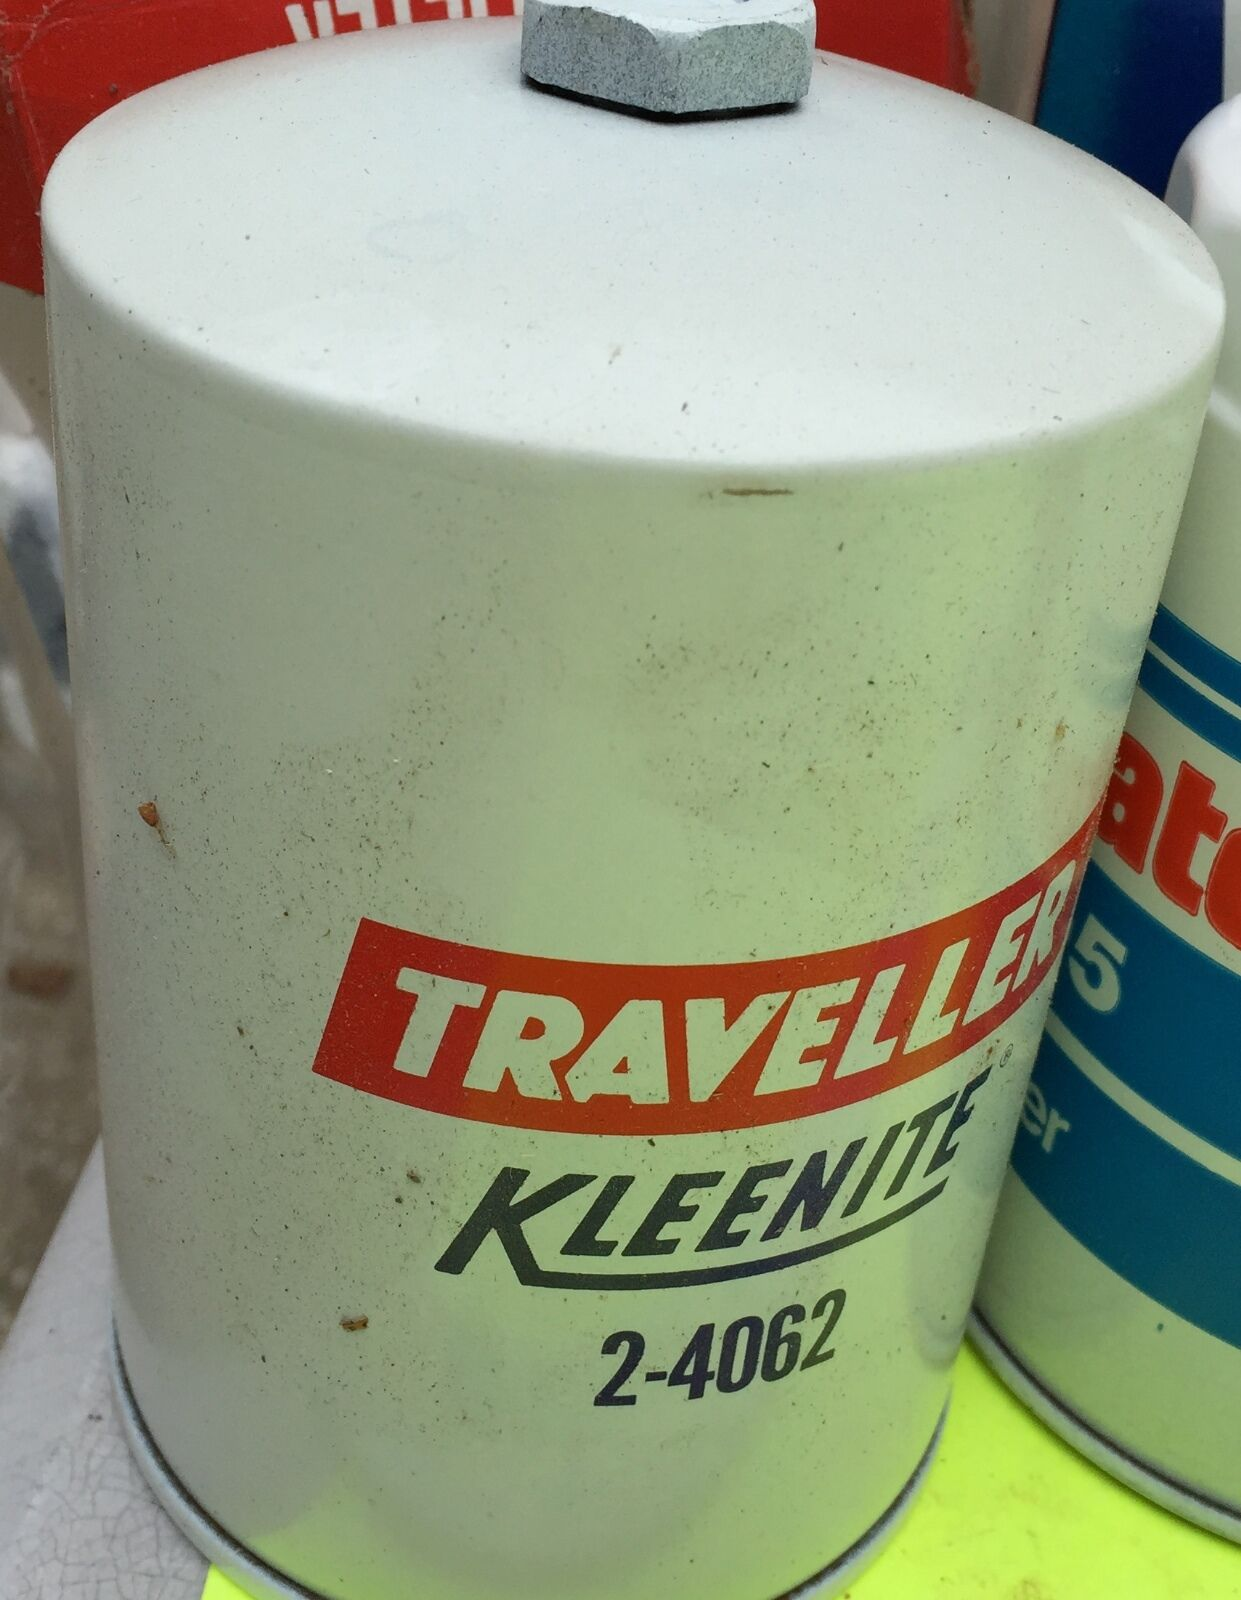 Us Old Cars Oil Filter Kleenite 2 4062 Item 4645 2200 260z Fuel 1 Of 1only Available